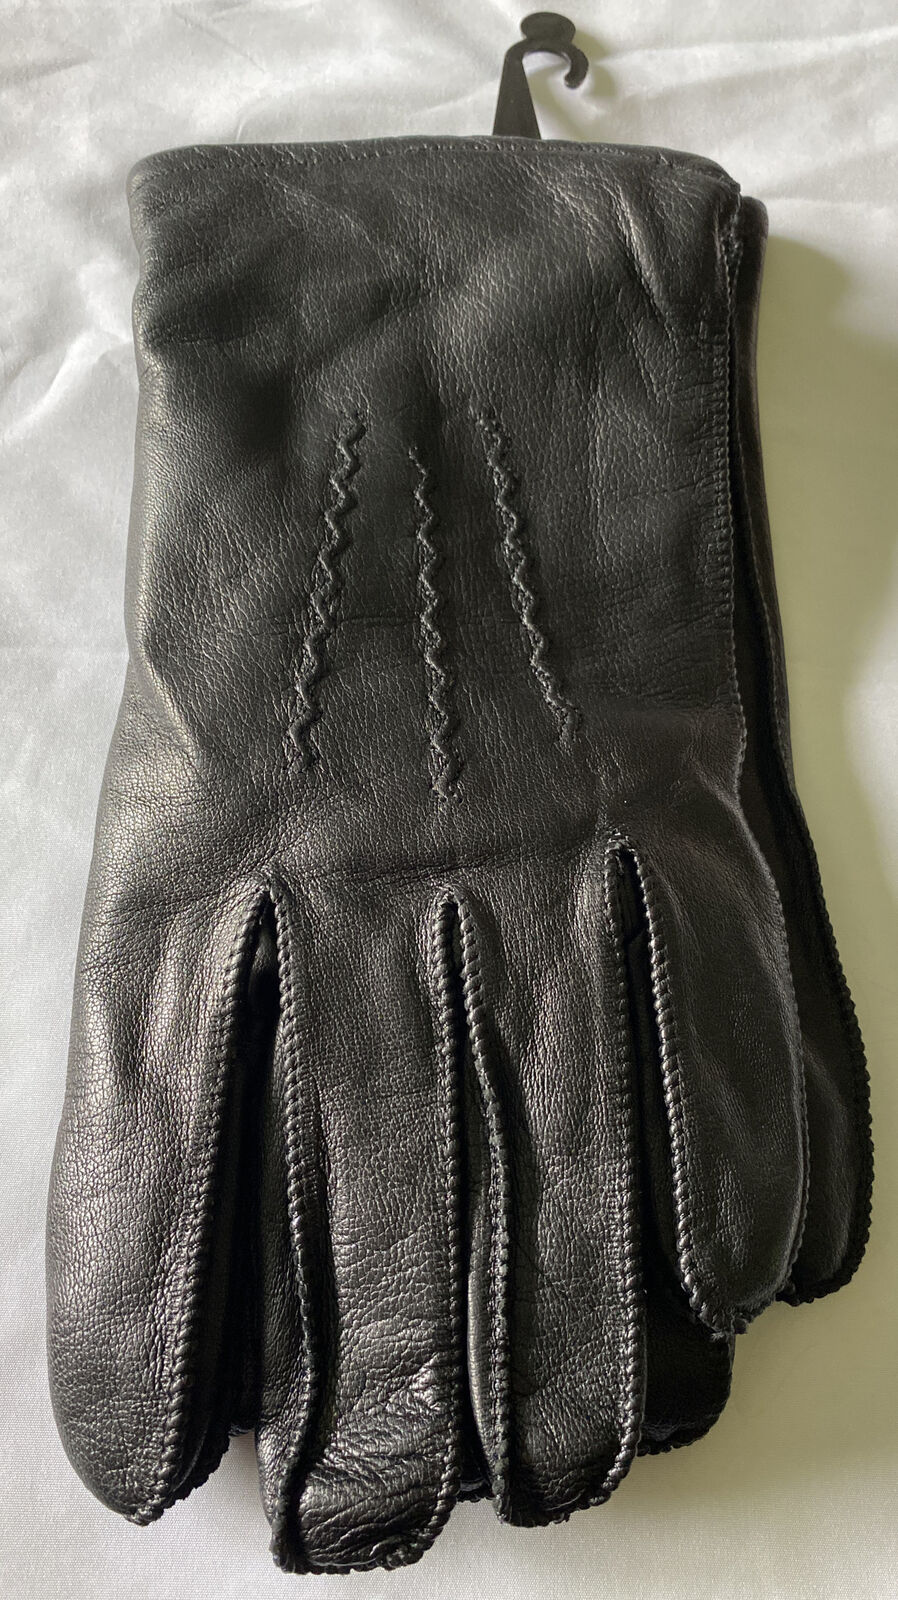 Mens Fownes Leather Gloves Black Size Large Wool Blend Lined 1843 NEW